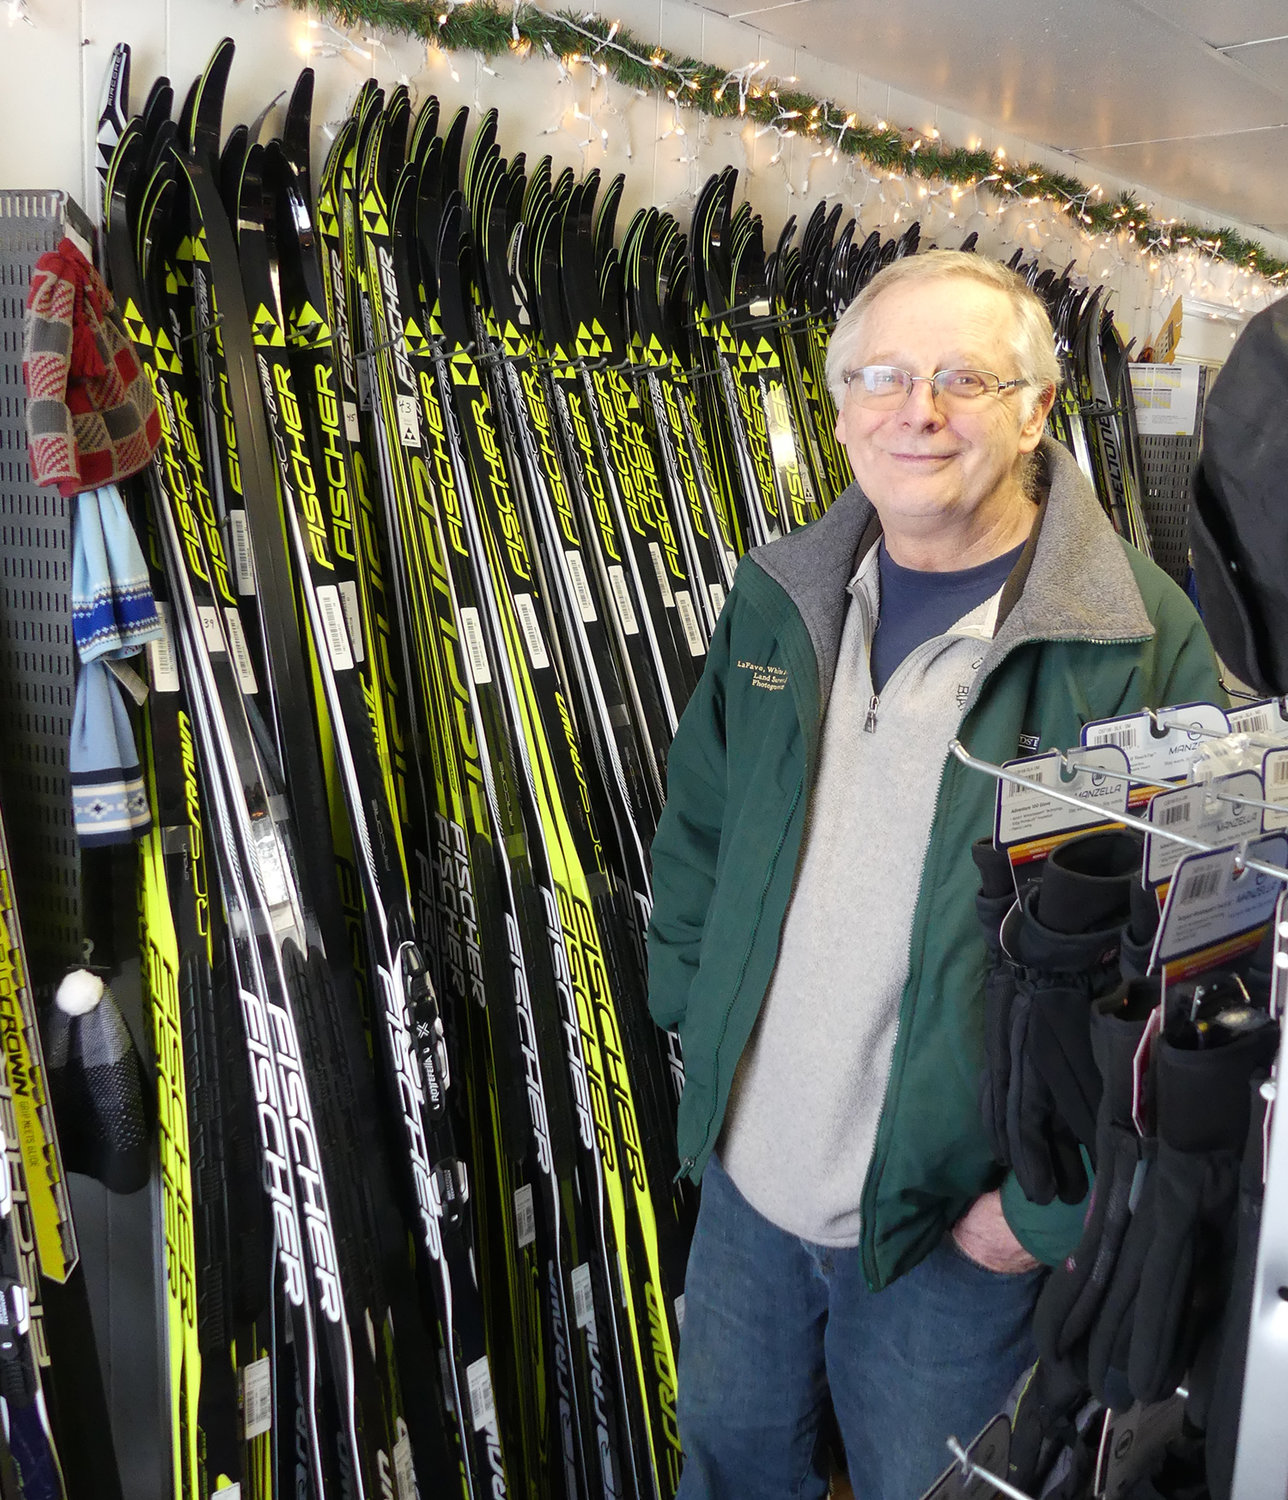 SKI CENTER — Hugh Quinn poses by skis for sale in the retail shop at Osceola-Tug Hill Cross Country Ski Center. The shop is part of the business that is for sale as Quinn and his wife, Anna, hope to leave it in new hands and retire by the end of next ski season.